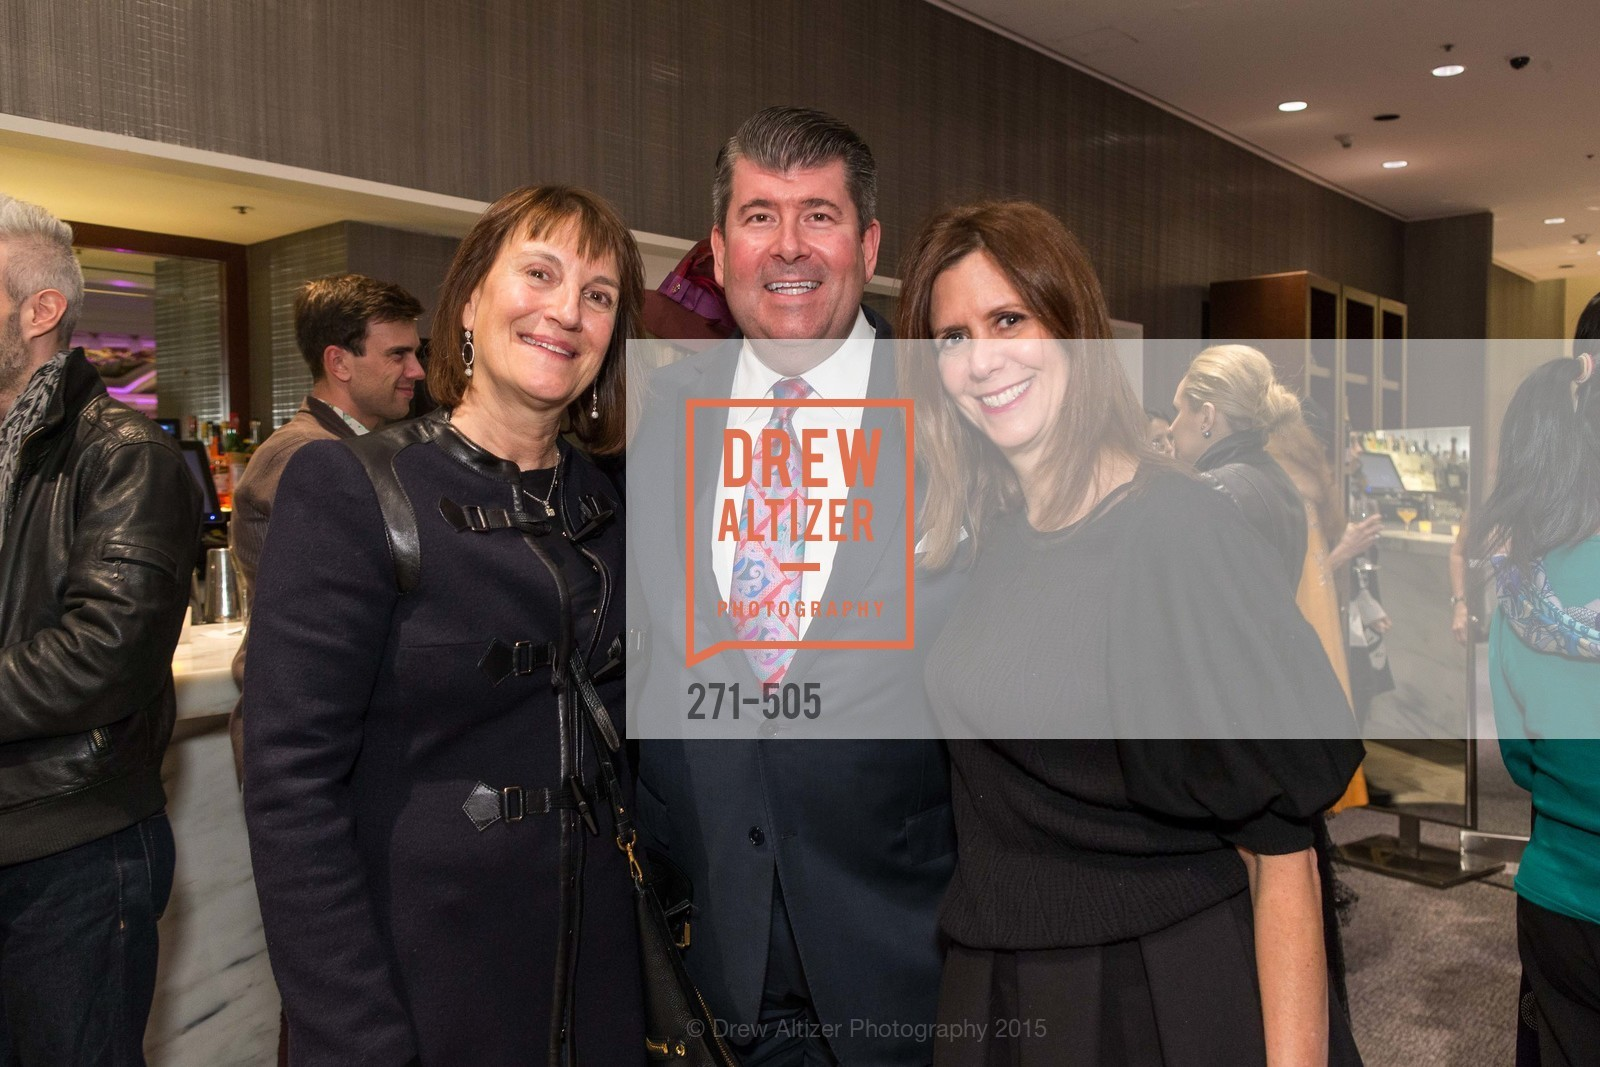 Debby Sagues, Alan Morrell, Donna Berg, Libertine Cocktail Party at Neiman Marcus, Neiman Marcus, November 10th, 2015,Drew Altizer, Drew Altizer Photography, full-service agency, private events, San Francisco photographer, photographer california